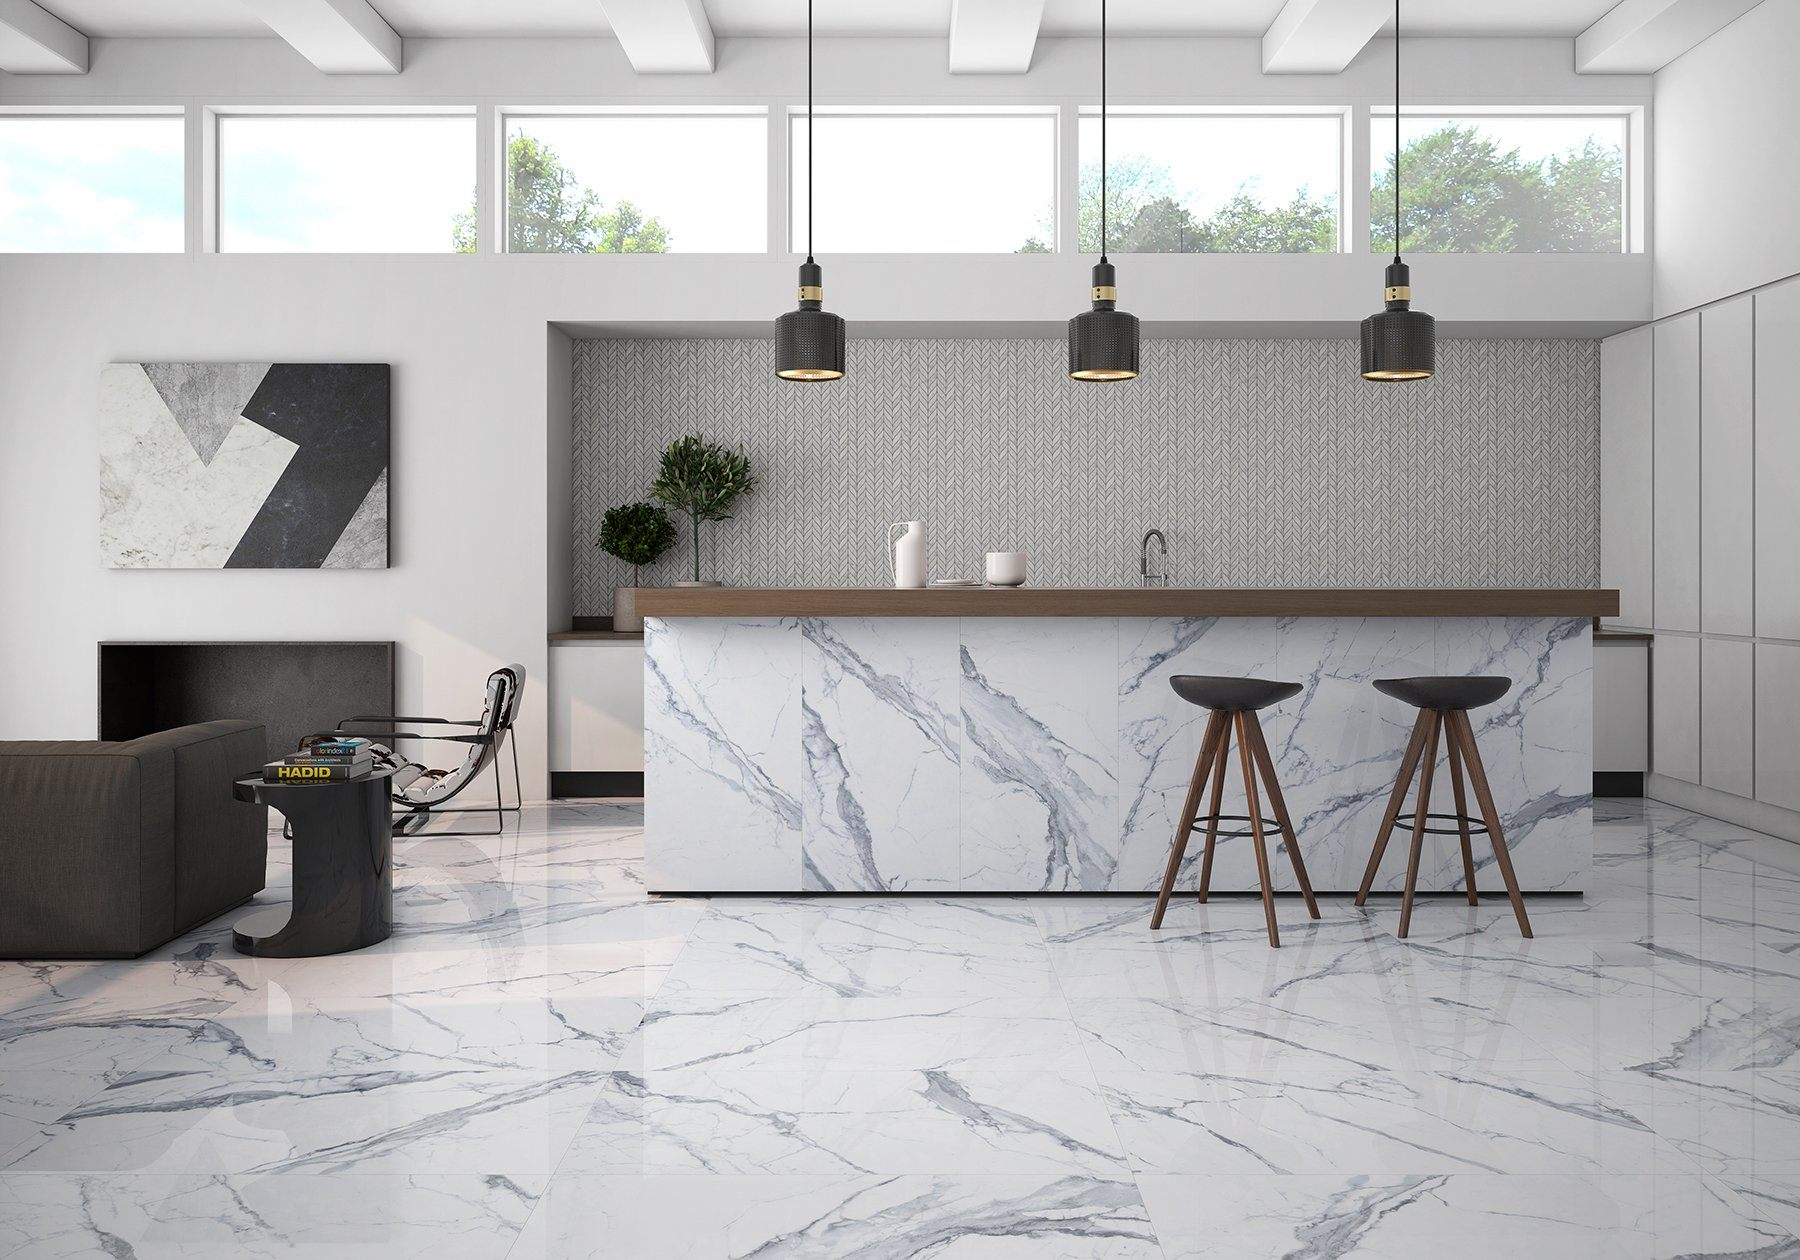 ROCA Tile Bianco Venatino 24x24 Polished Porcelain Tile Tilezz